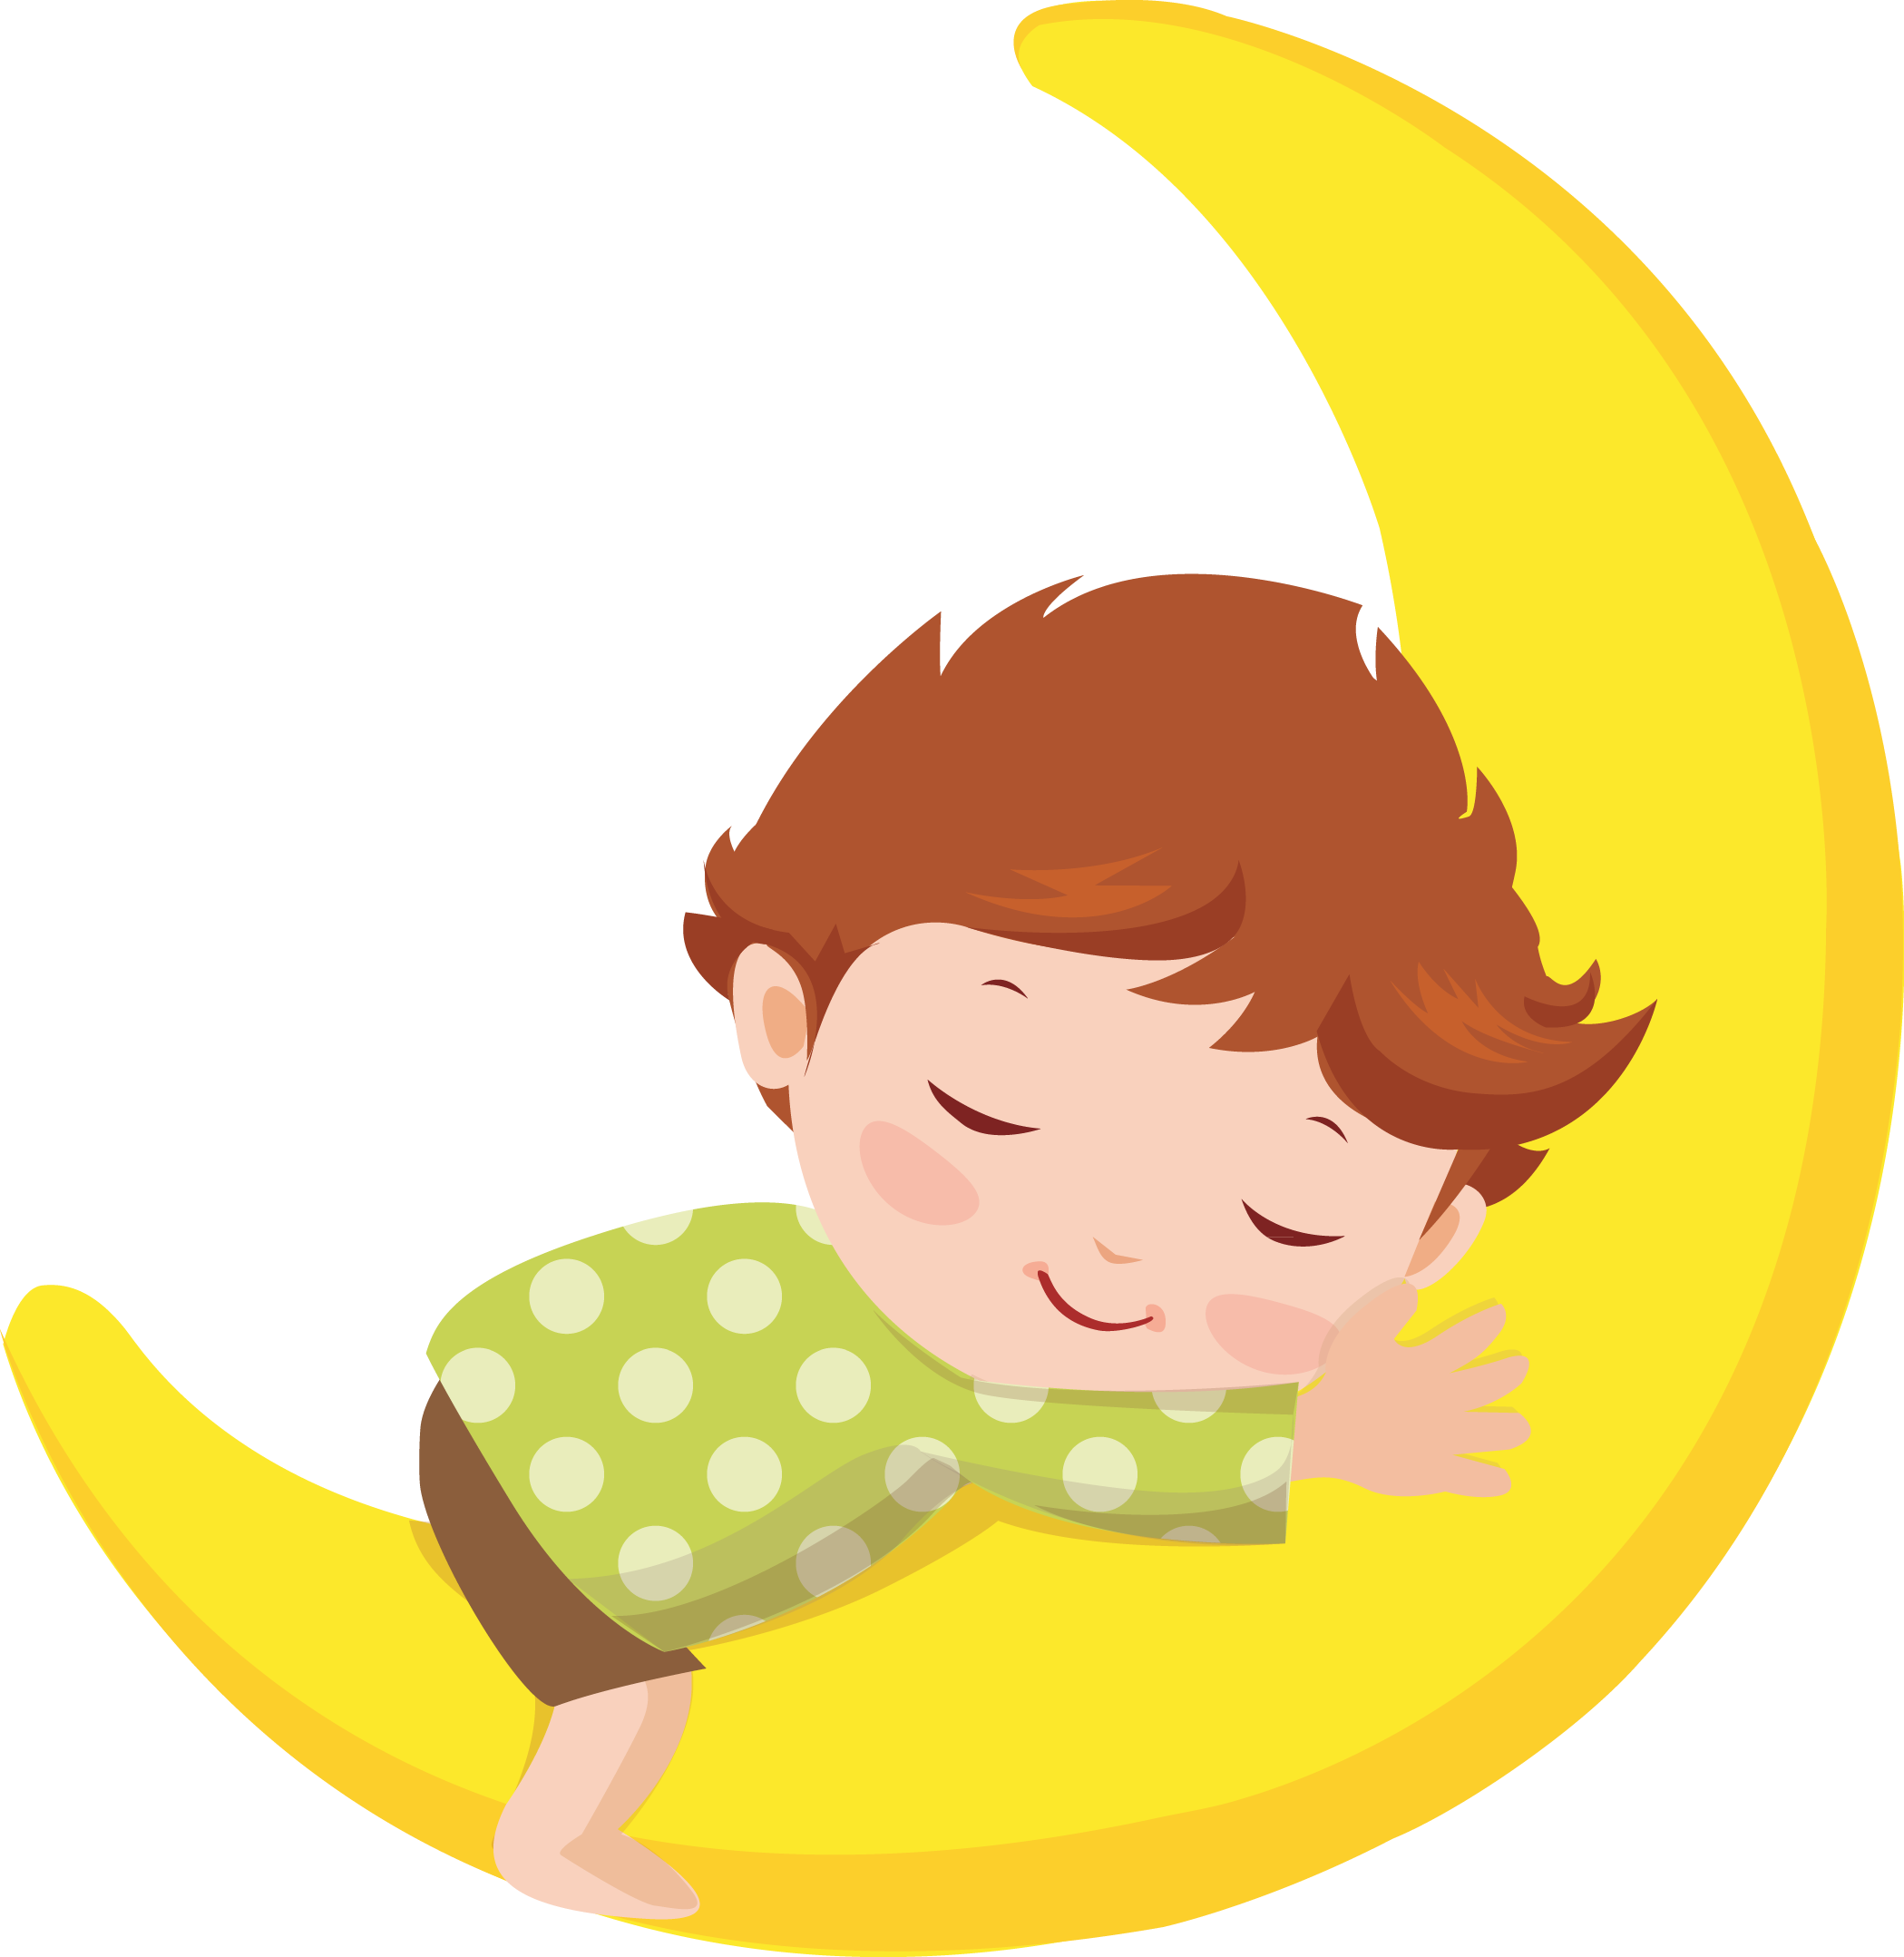 Child sun and moon clipart jpg free CH.B *✿* De Minus | okul oncesi | Pinterest | Clip art and Patterns jpg free